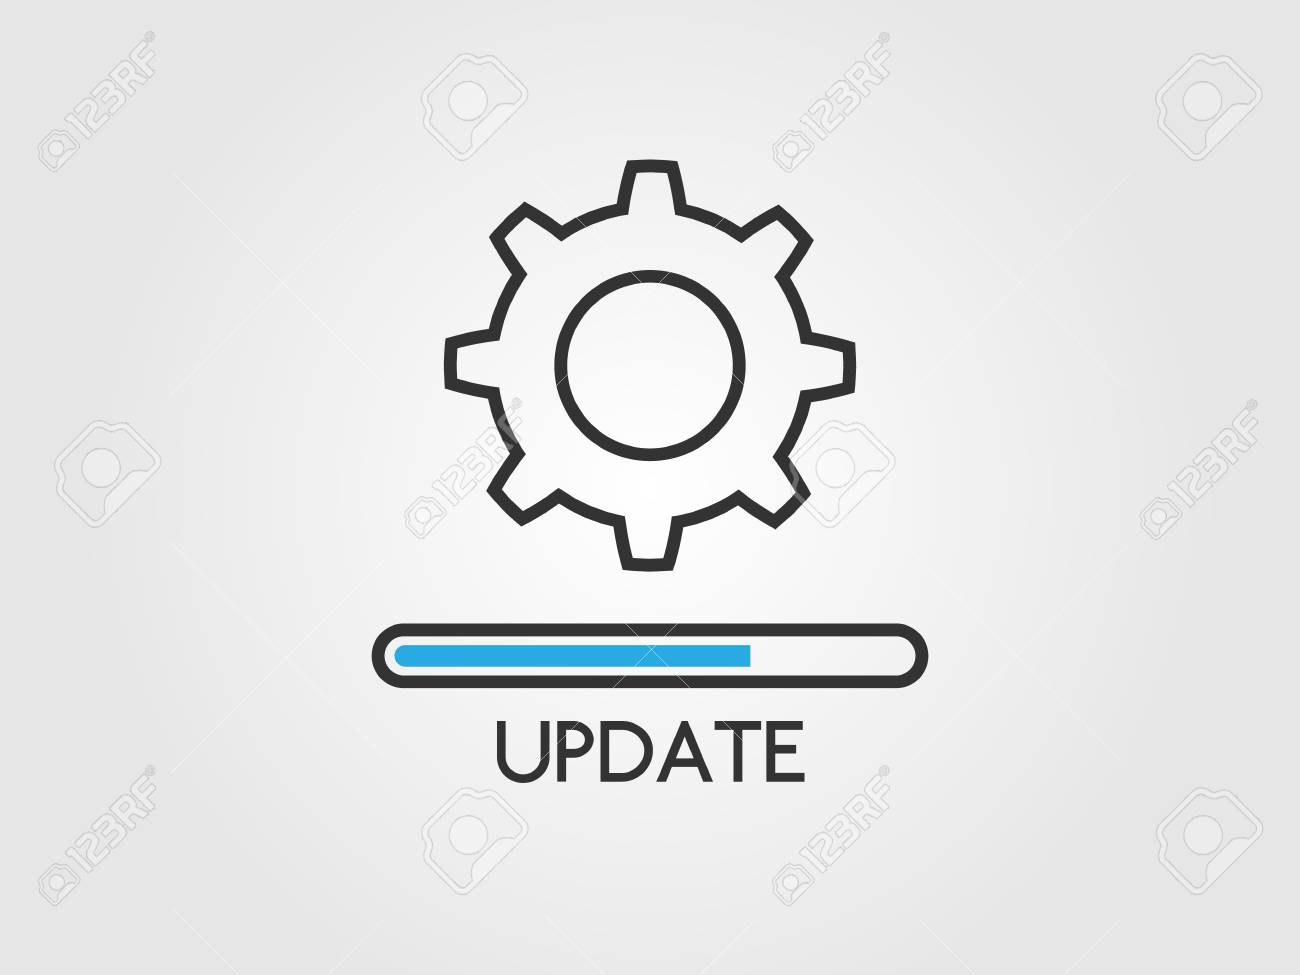 Update software concept. Upgrade system icon. Application status and load progress bar in flat style. Loading process and gears. Updating app design. Vector illustration - 126610927